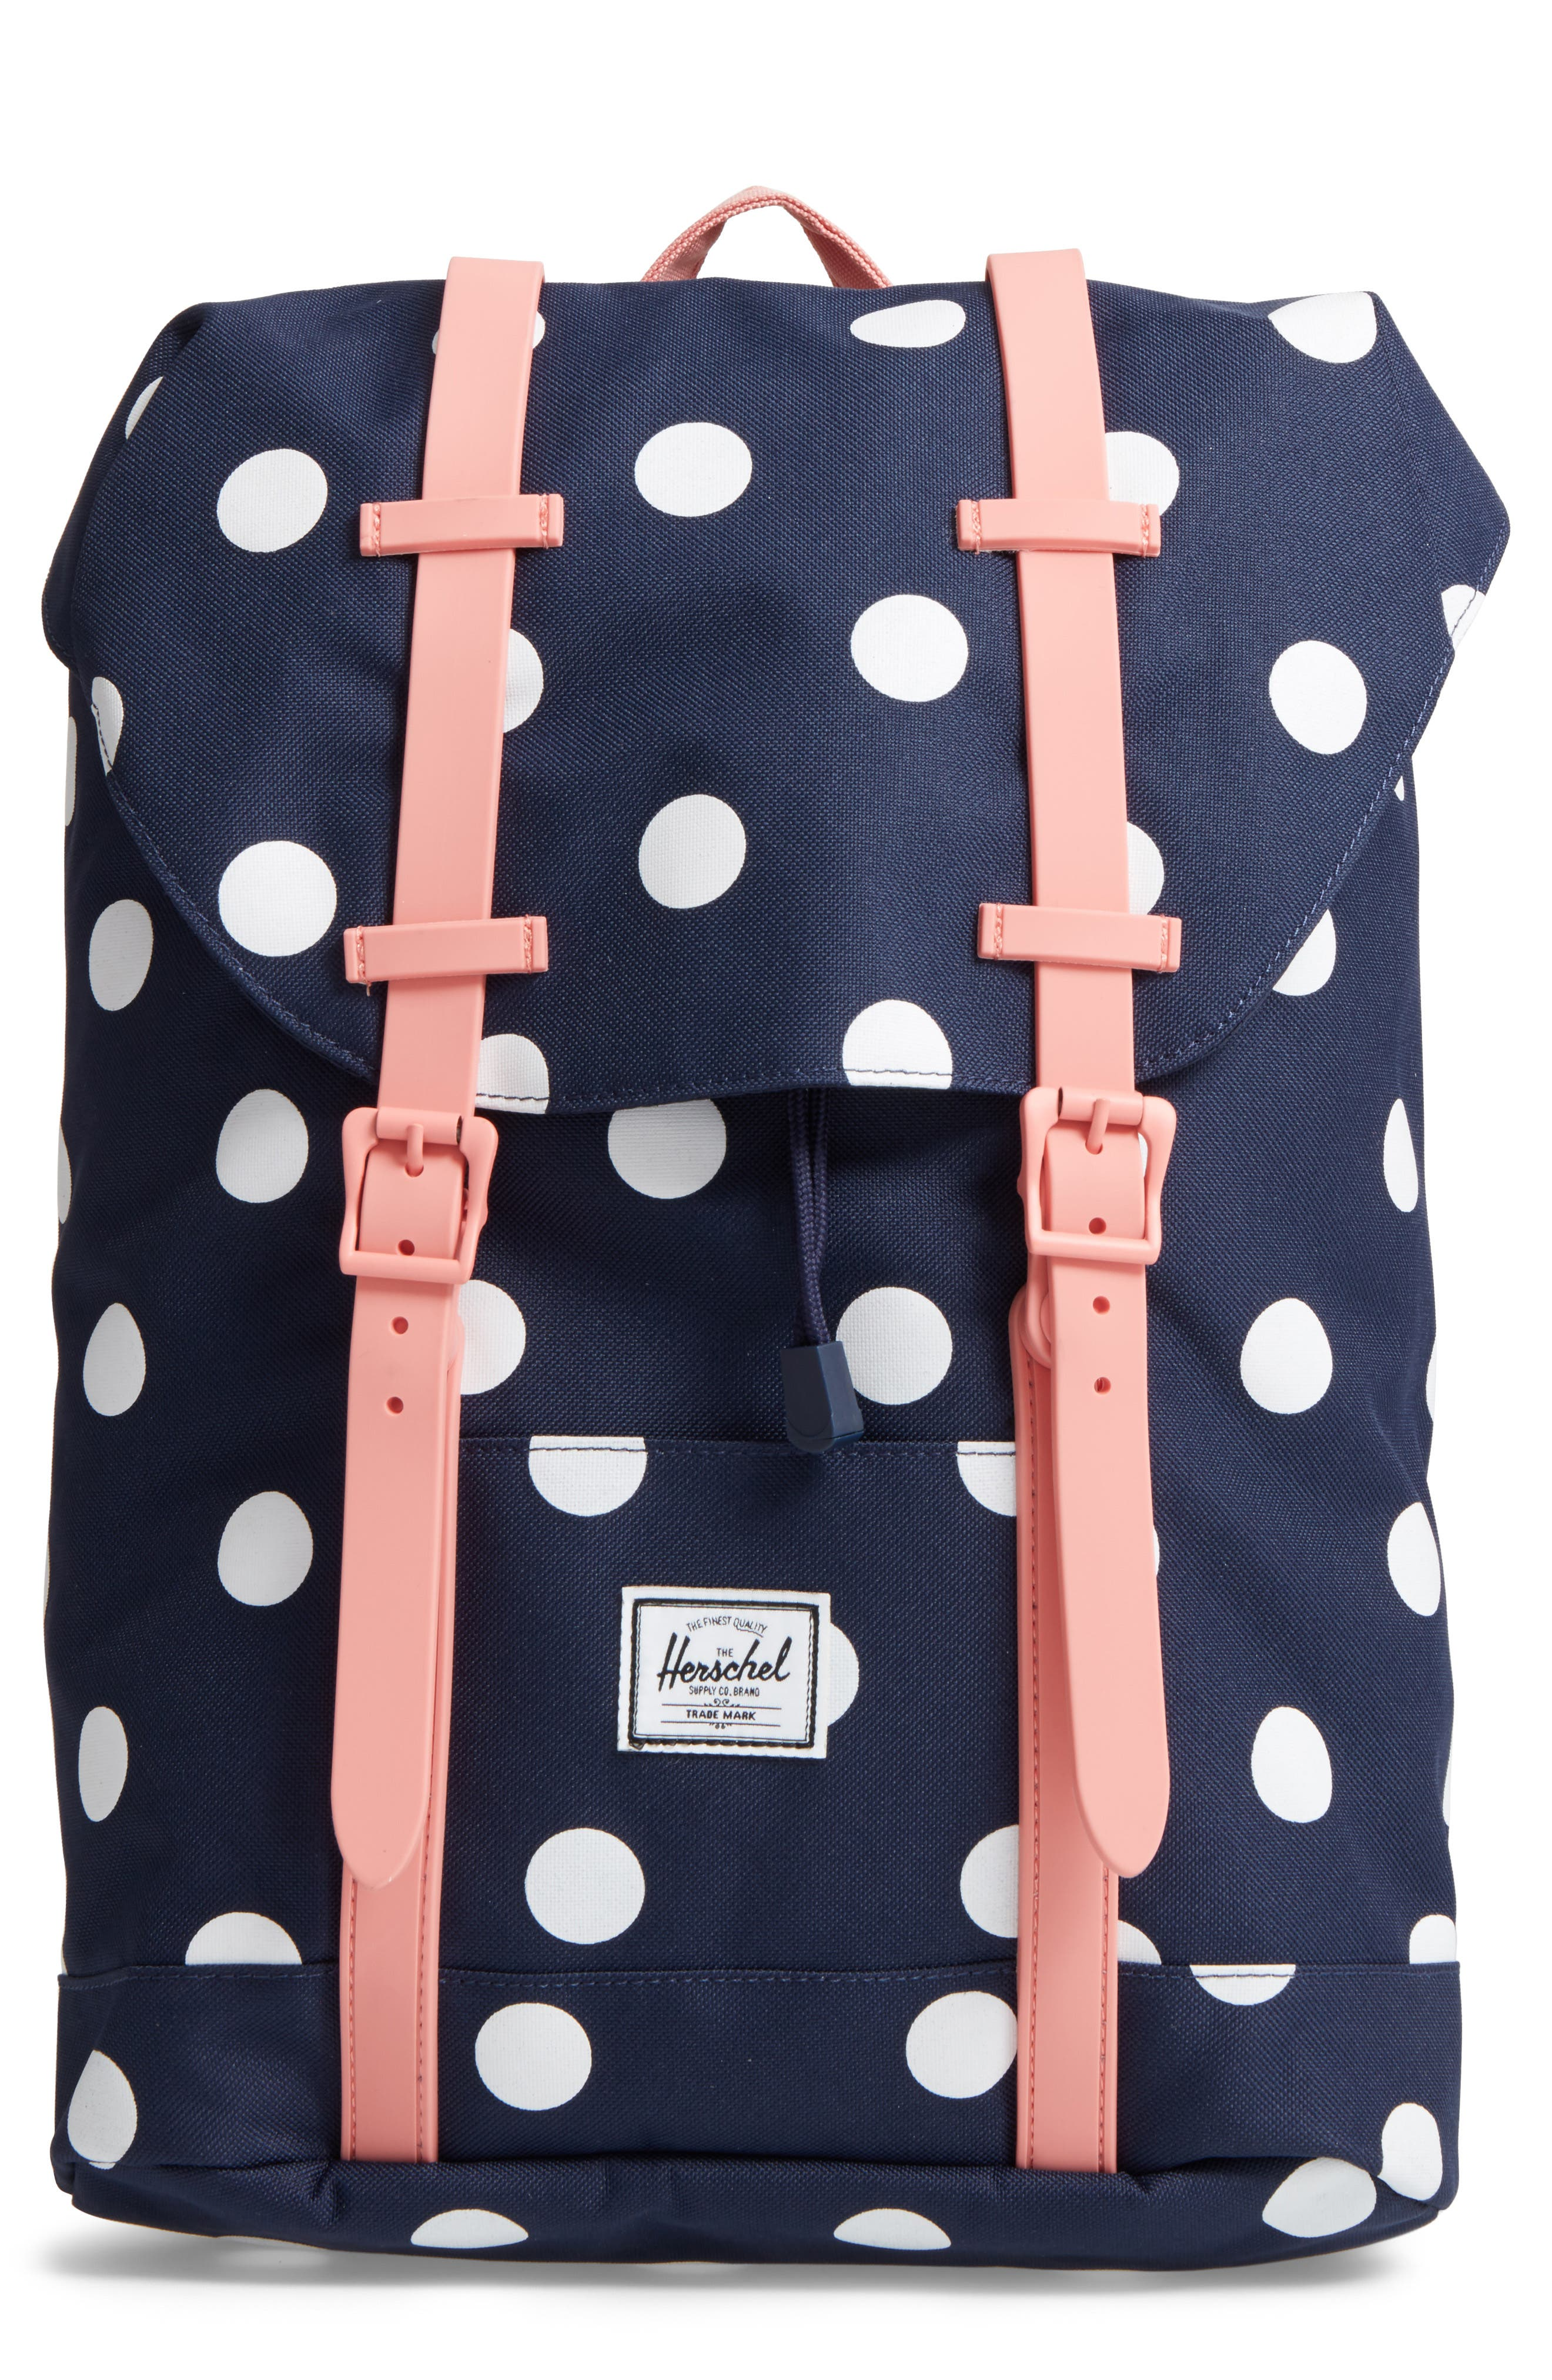 Retreat Backpack,                         Main,                         color, Polka Dot/ Strawberry